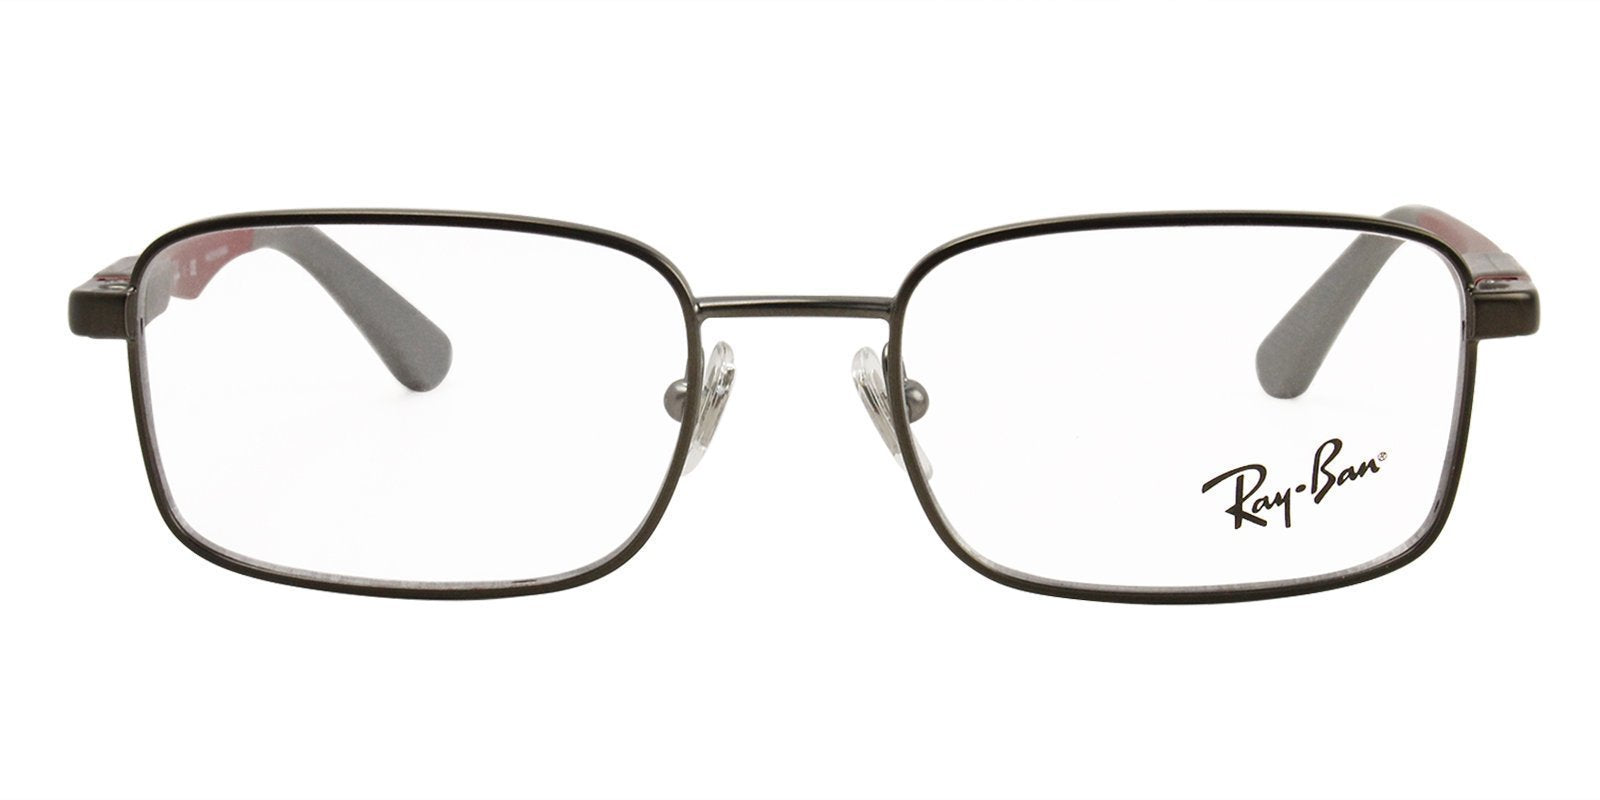 Ray Ban Rx - RY1043 Gray Rectangular Unisex Eyeglasses - 46mm-Eyeglasses-Designer Eyes